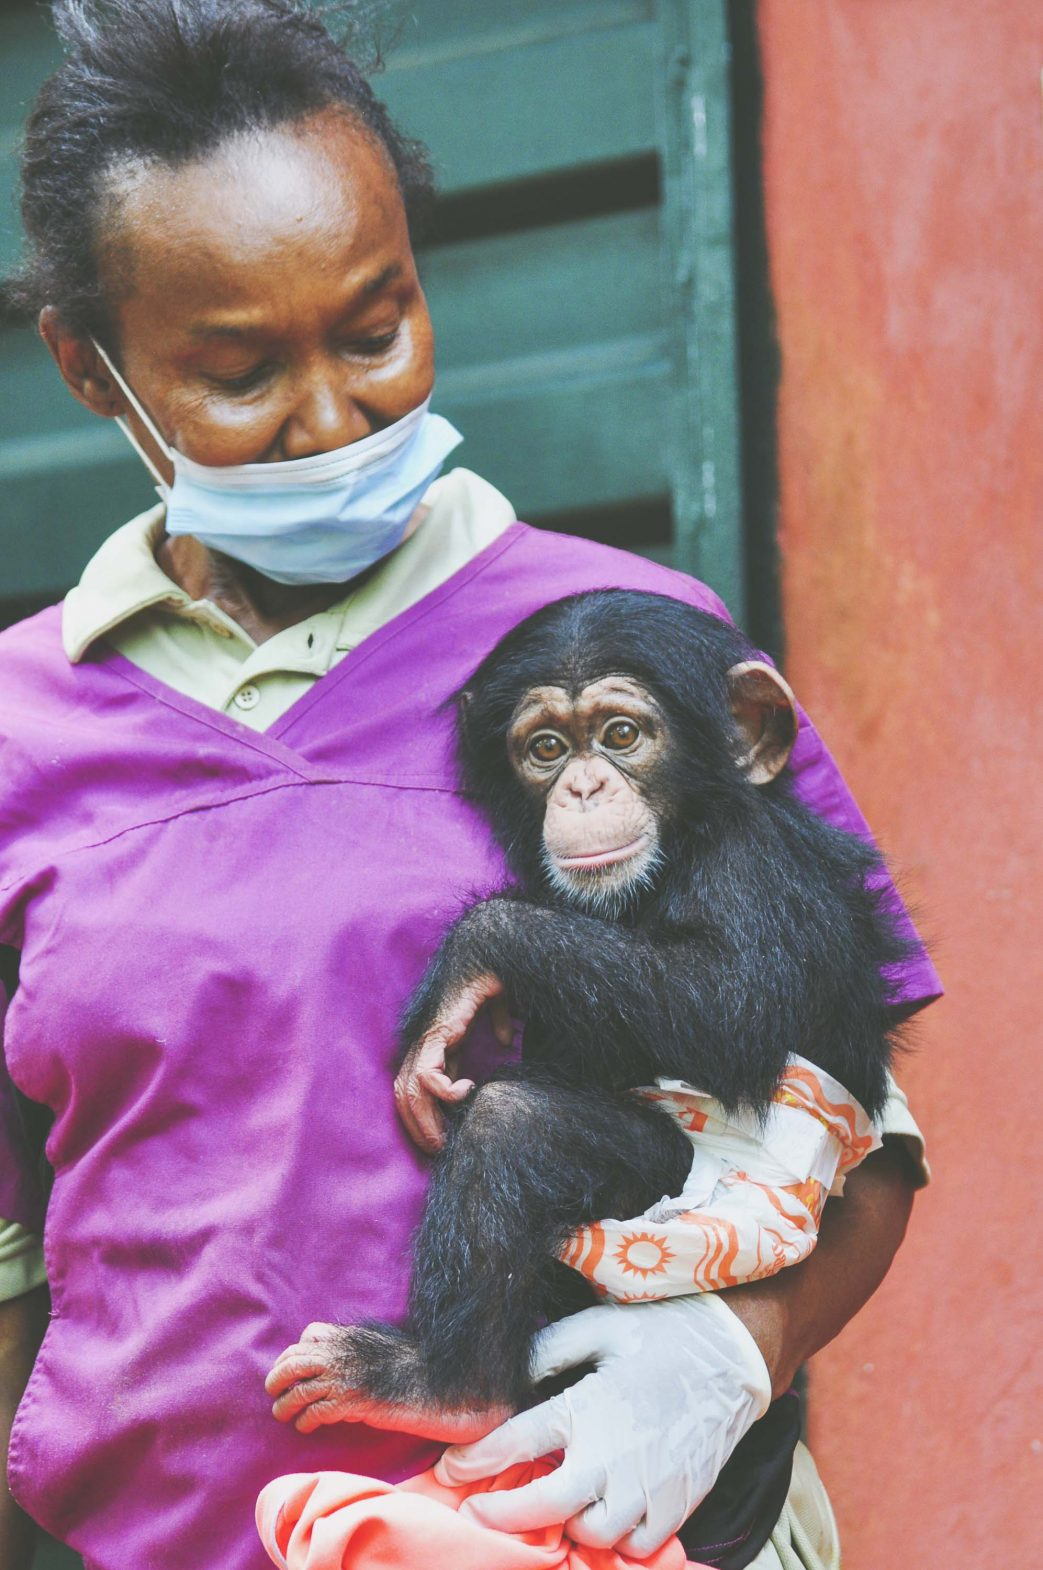 Surrogate human mum Mama P nurtures seven-month-old baby Caesar at Tacugama Chimpanzee Sanctuary near Freetown